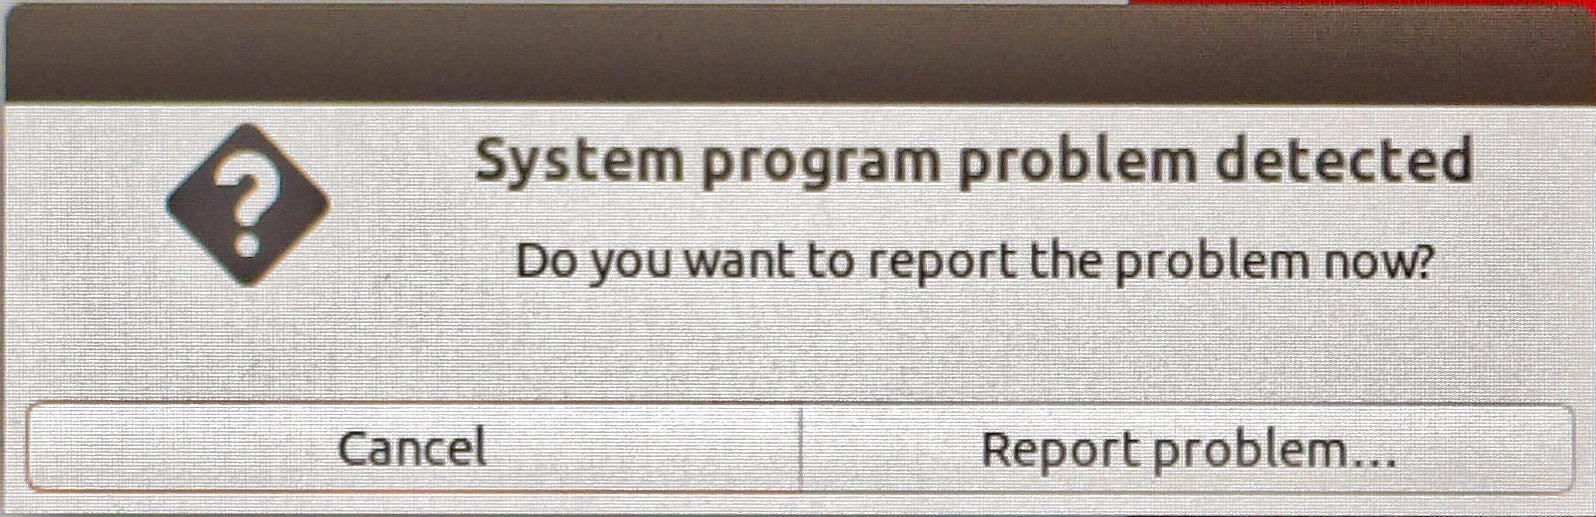 This should be Ubuntu-message-detail.jpeg.  Is it missing?